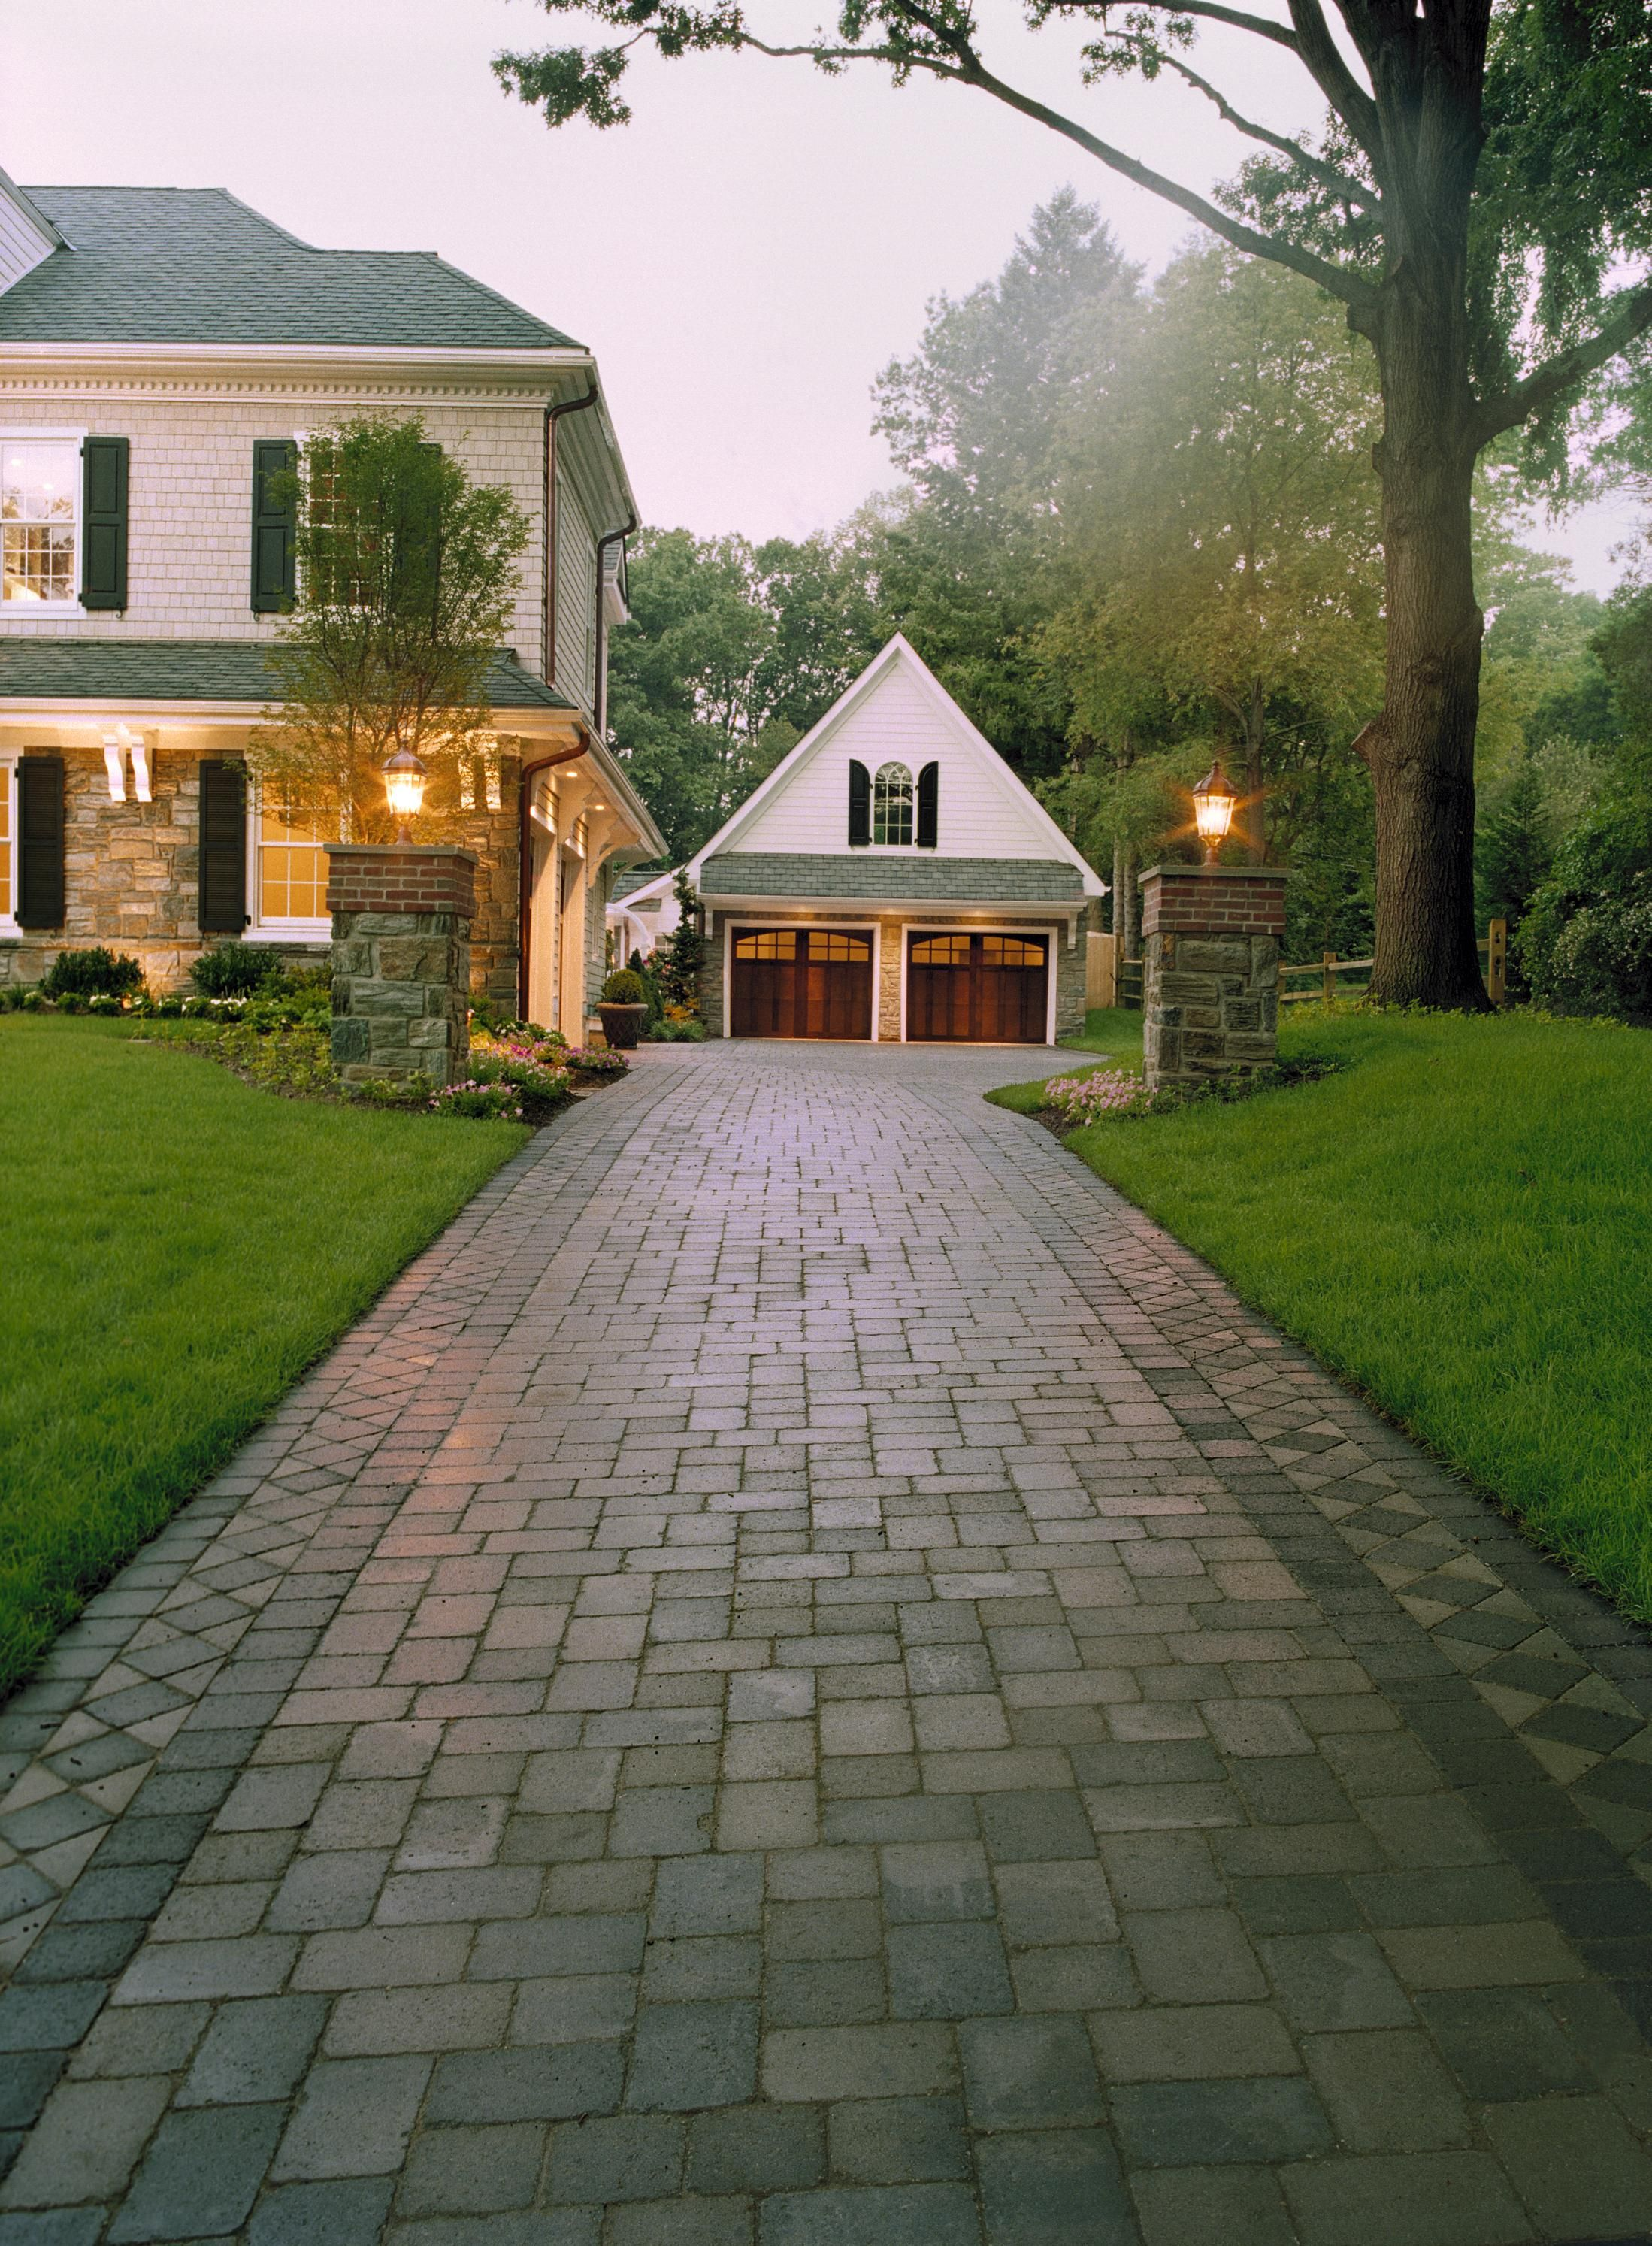 Paver Driveway. Love It! Love This Type Of Style Of House